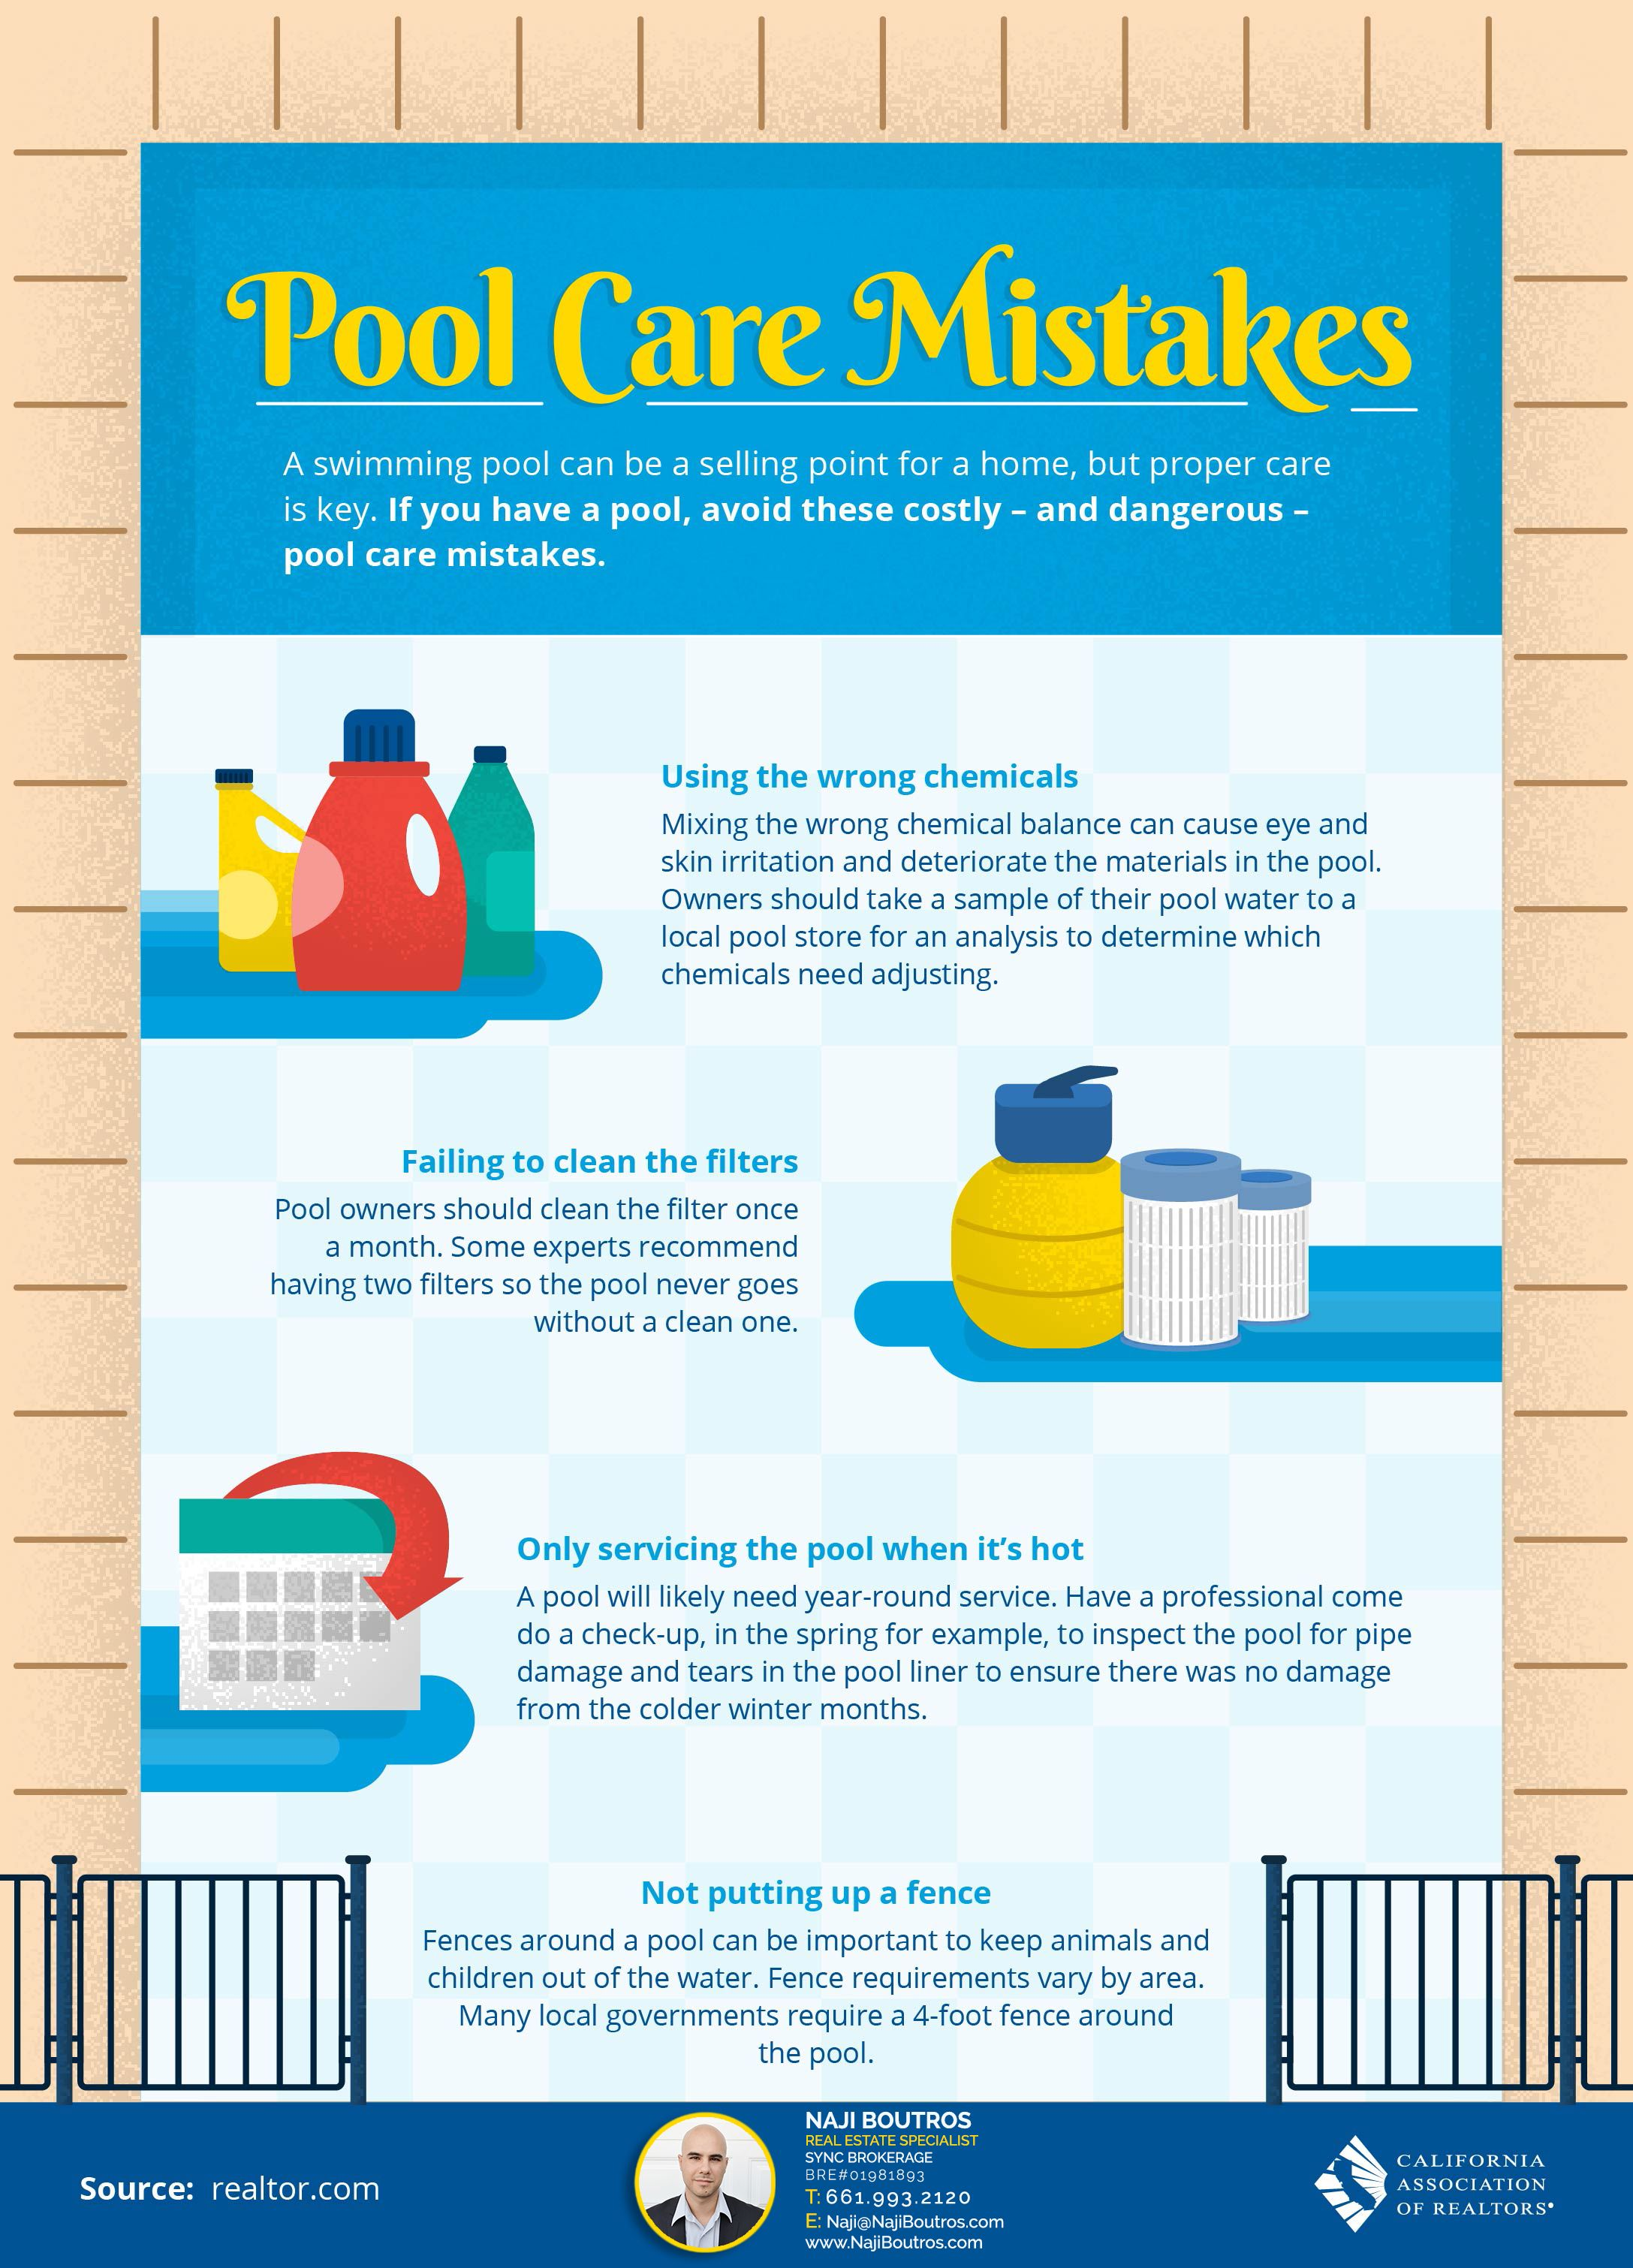 Four Costly and Dangerous Pool Care Mistakes | Real estate